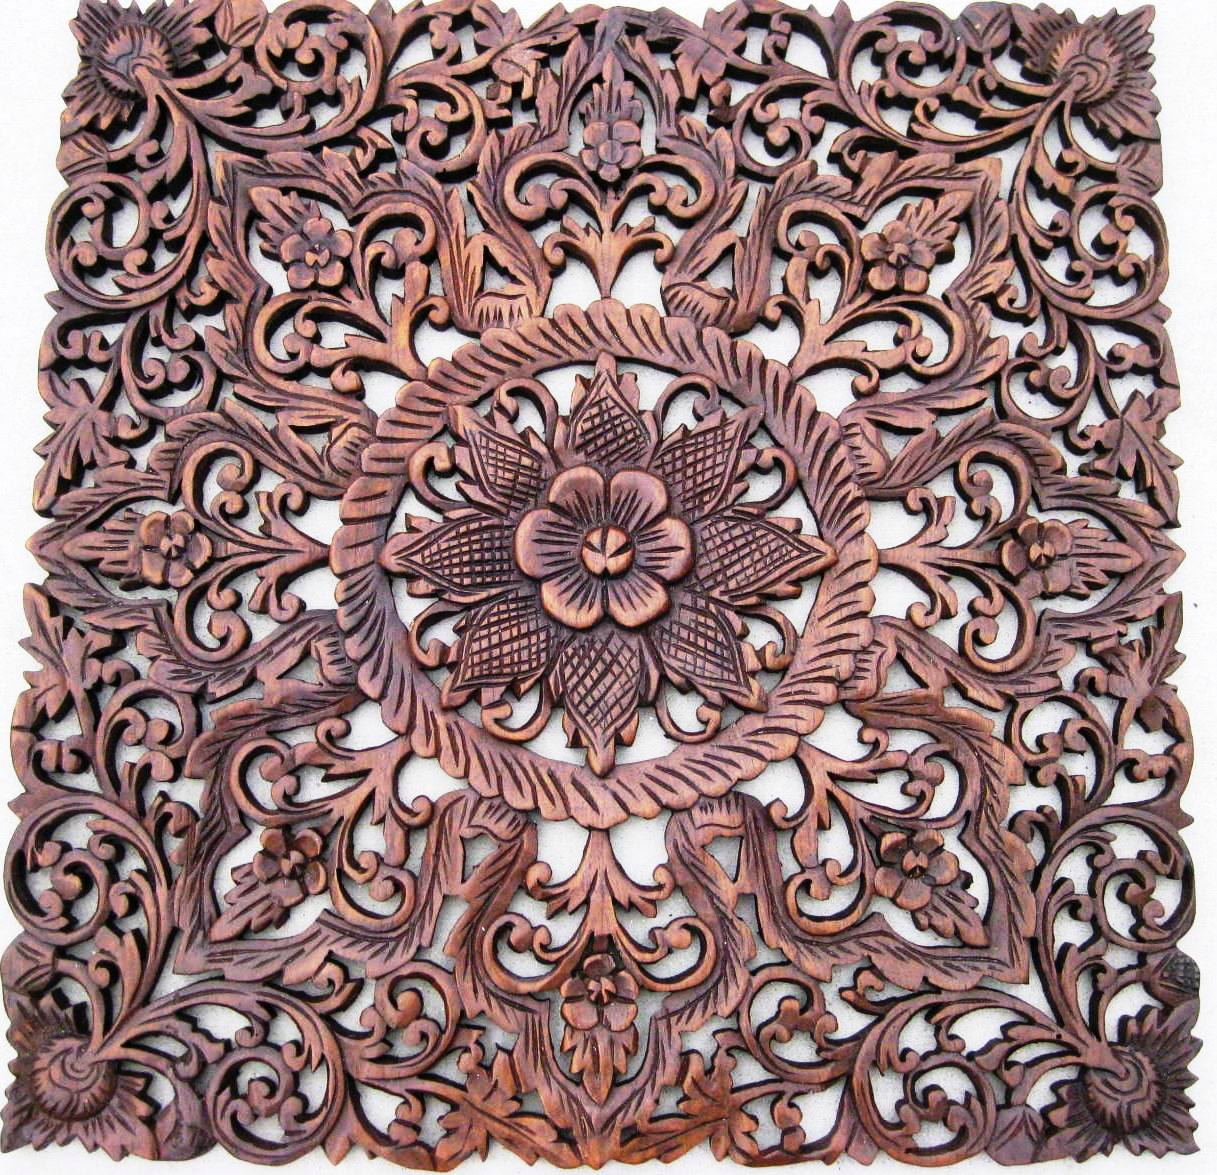 2'x2' Teak Wood Panel Mahogany ... - Custom Hand Carved Teak Wood Panels/ Hand Carved Teak Wood Panels